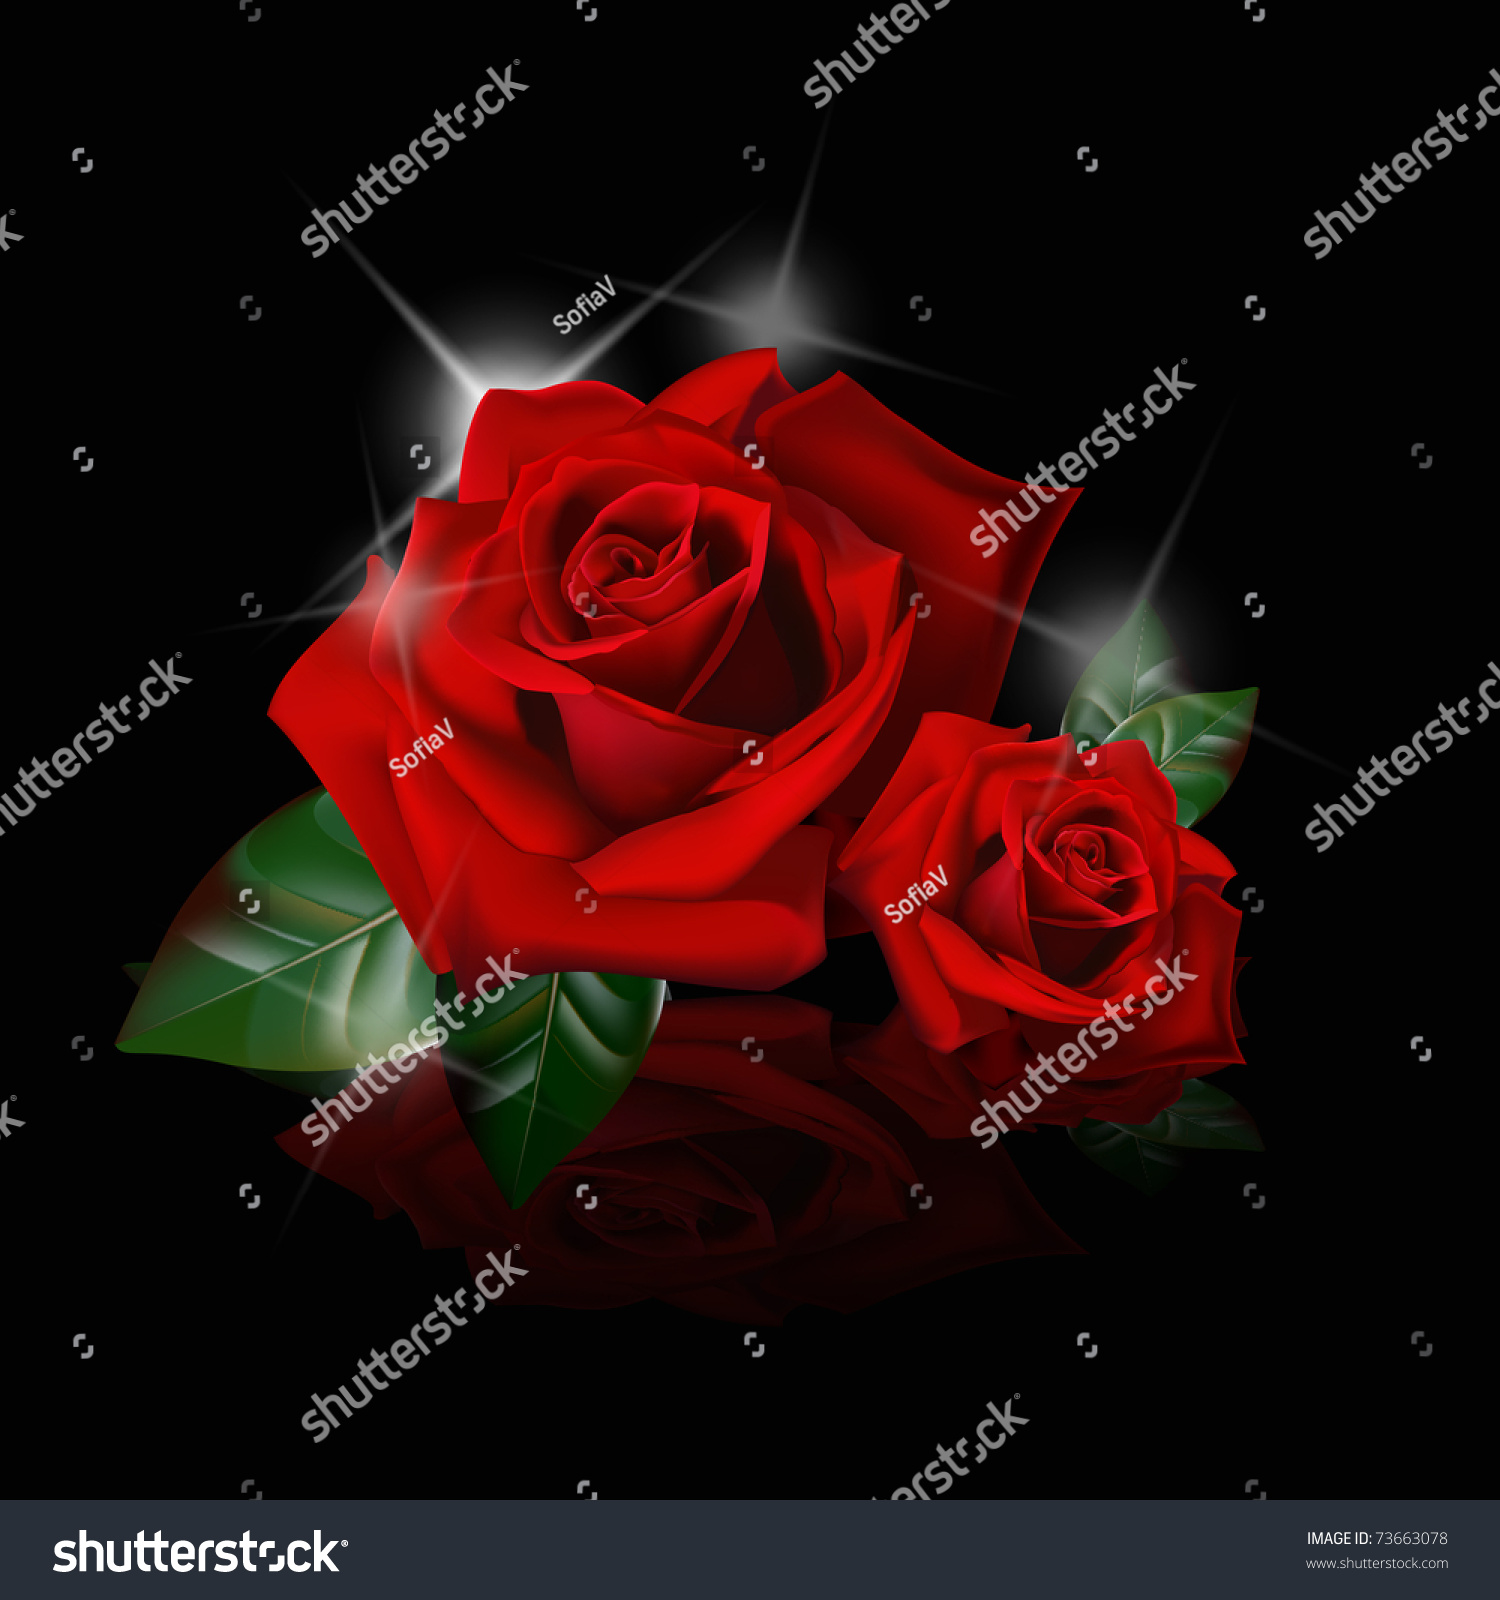 Beautiful red roses on black background stock vector 73663078 beautiful red roses on black background izmirmasajfo